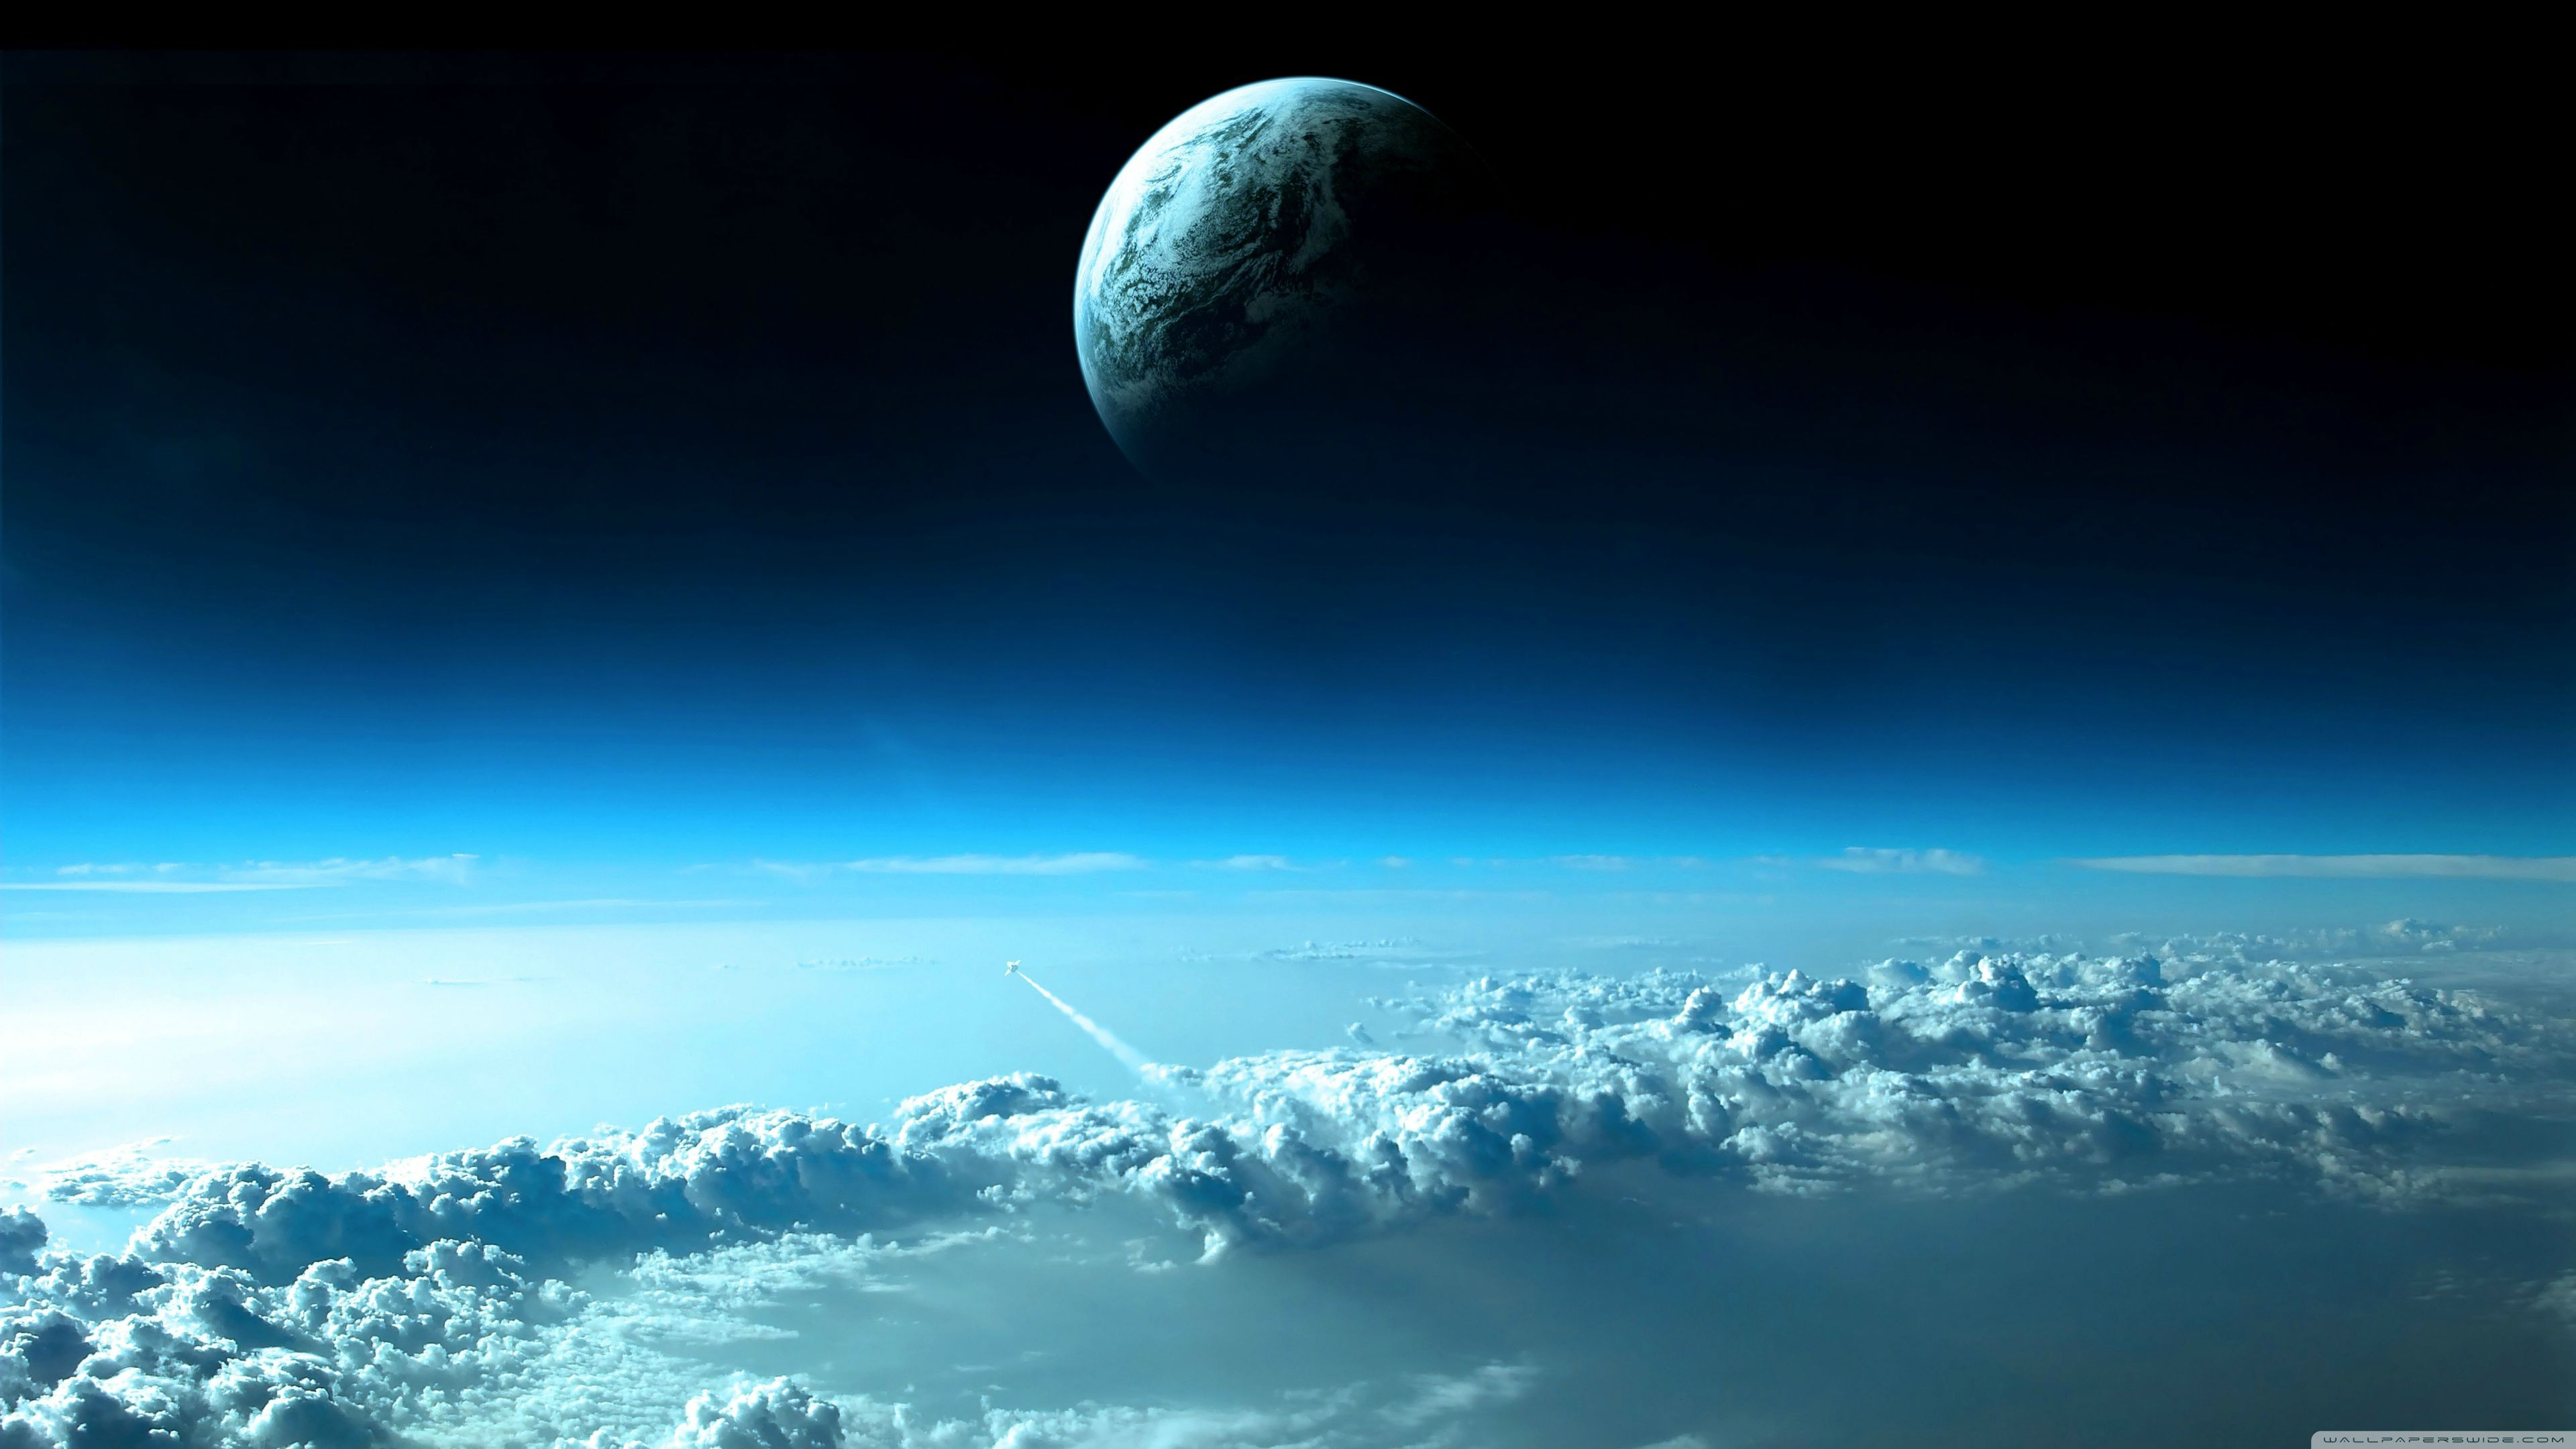 Iphone Android Desktop: 4K Space Wallpaper ·① Download Free Stunning Wallpapers